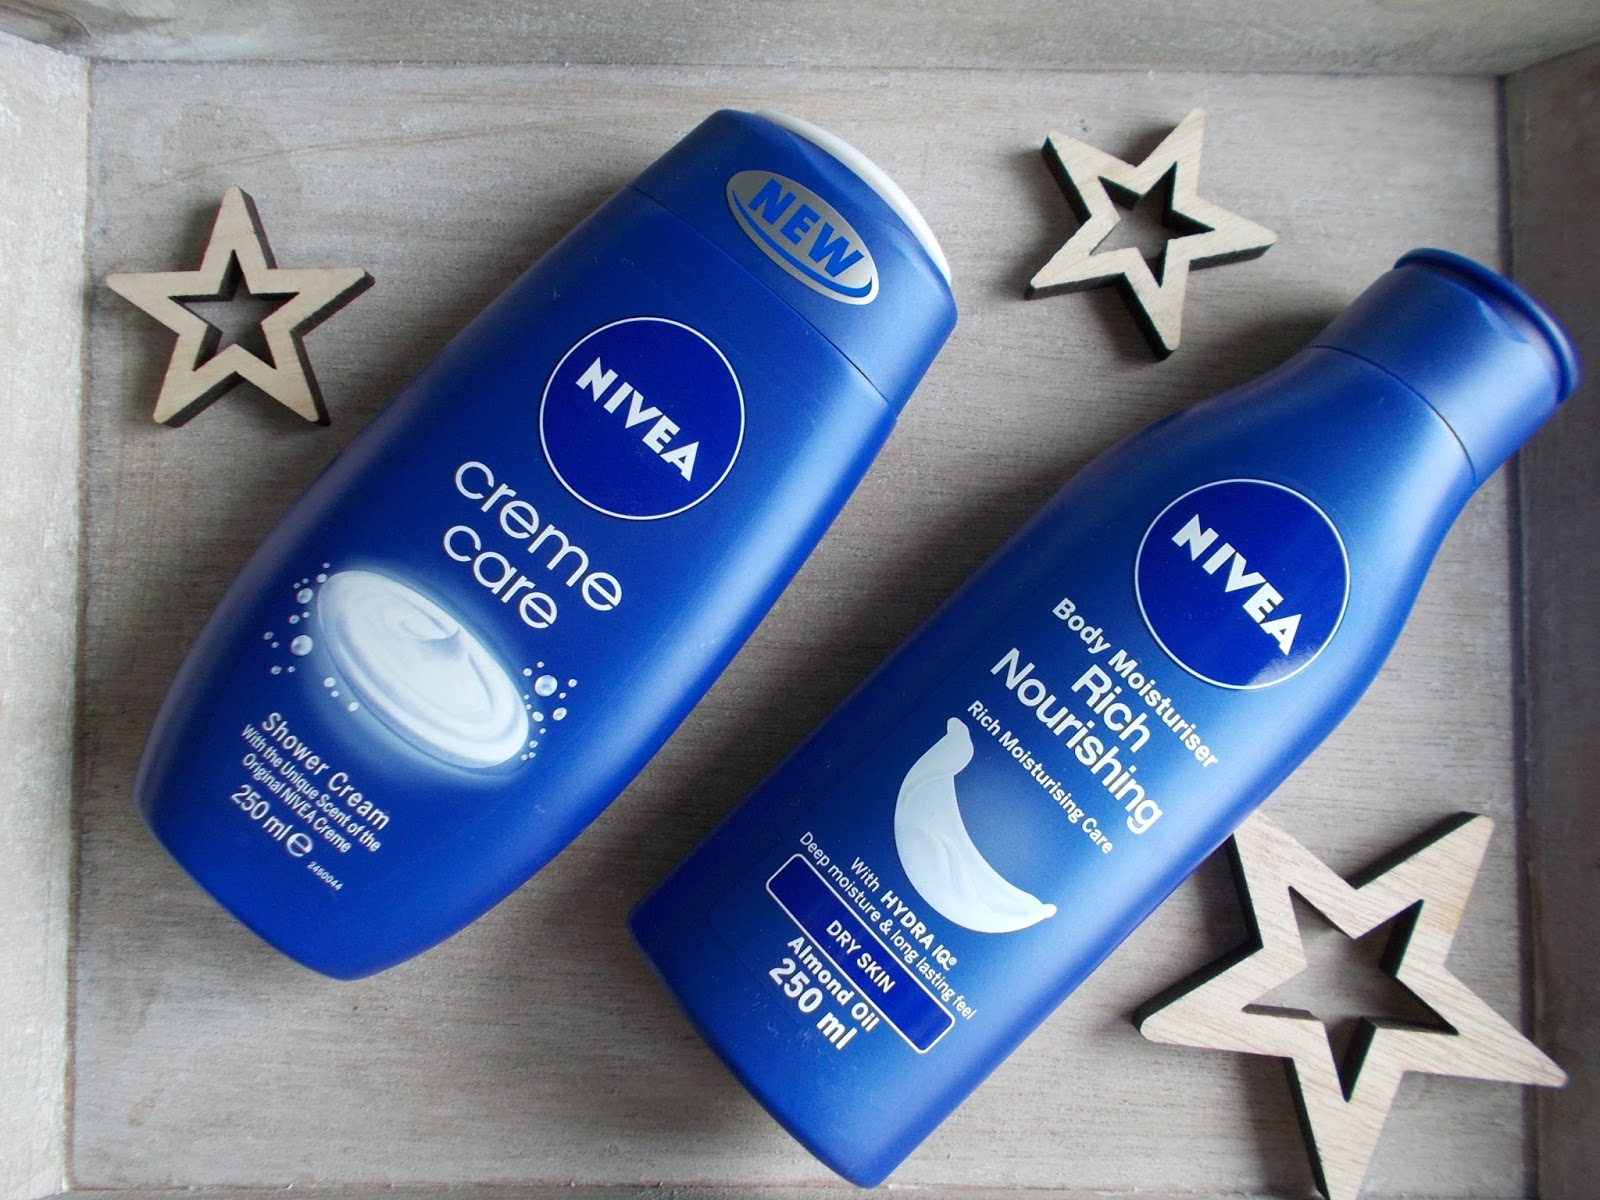 NIVEA rich nourishing body moisturiser creme care shower cream